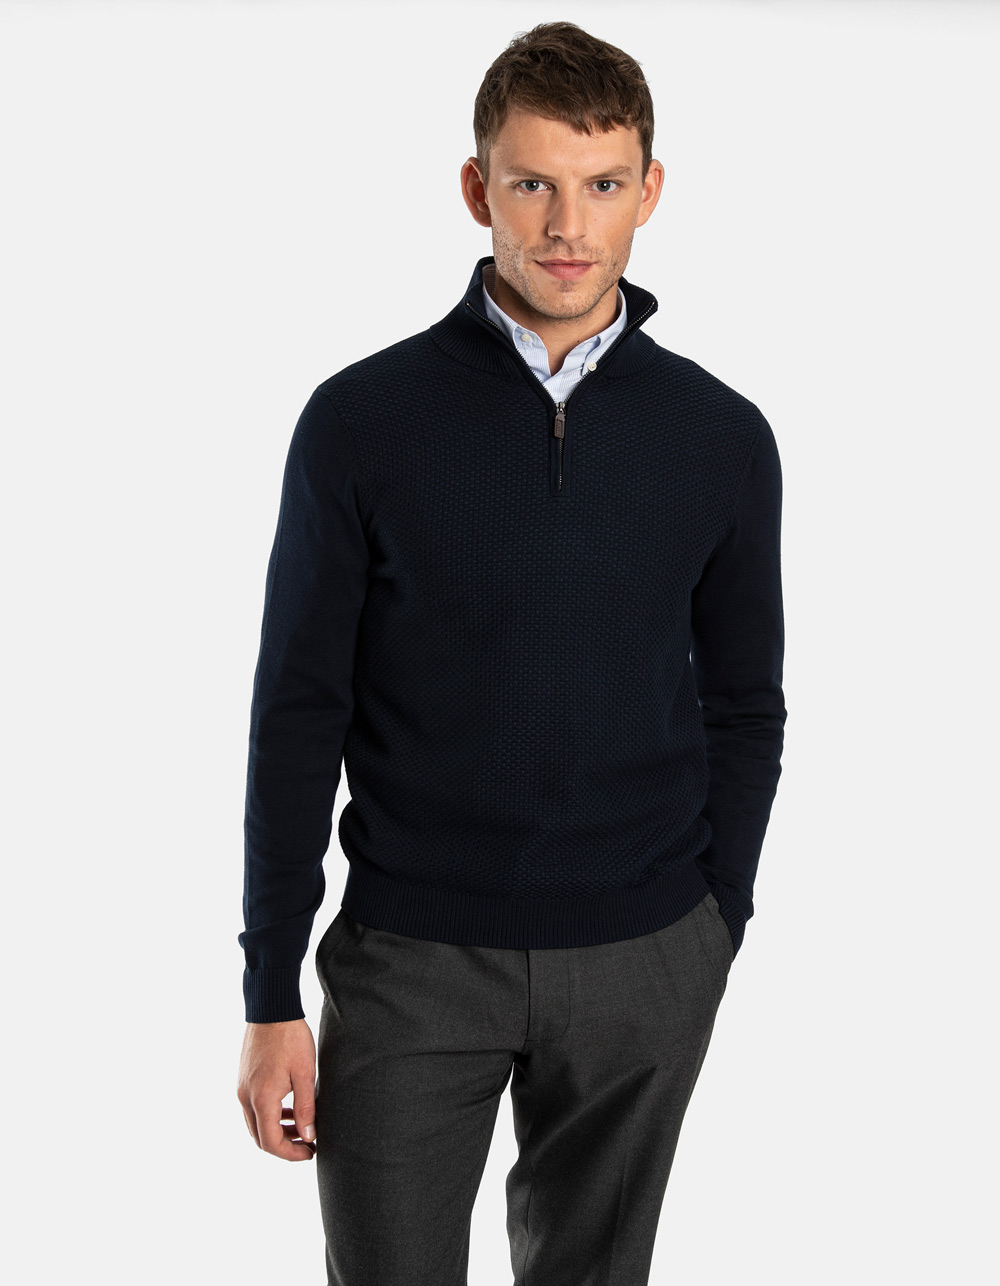 Dark Navy neck sweater with zip